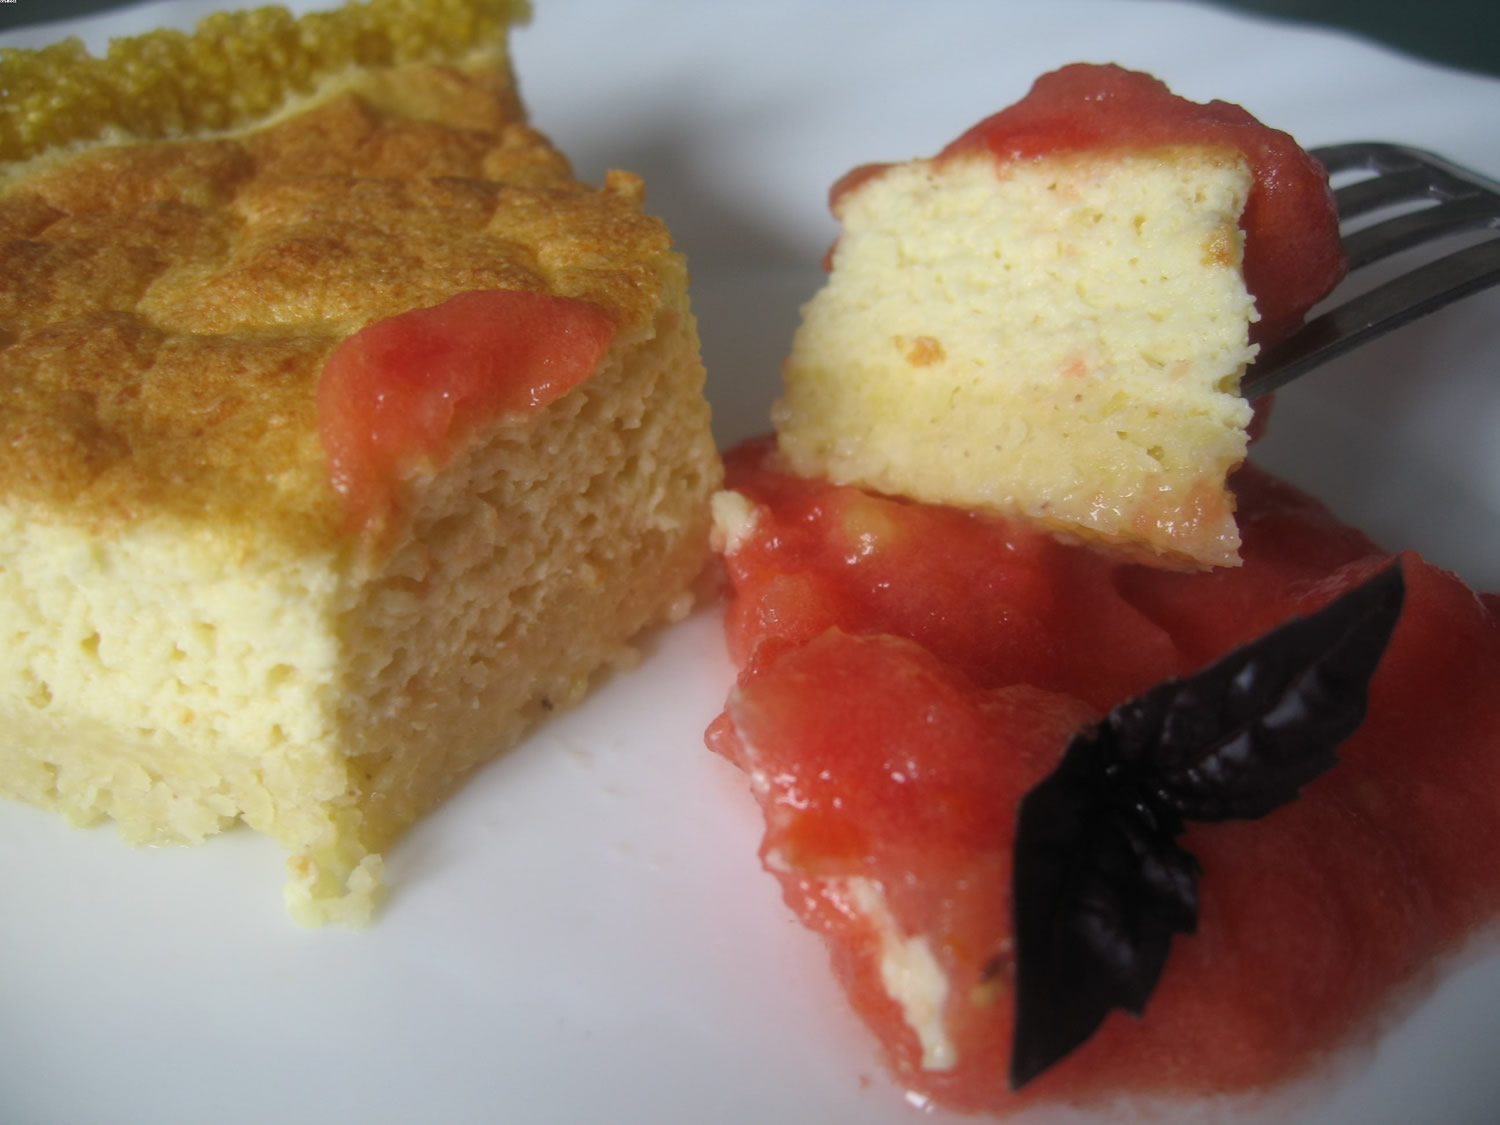 Cheesecake au millet & son coulis rouge